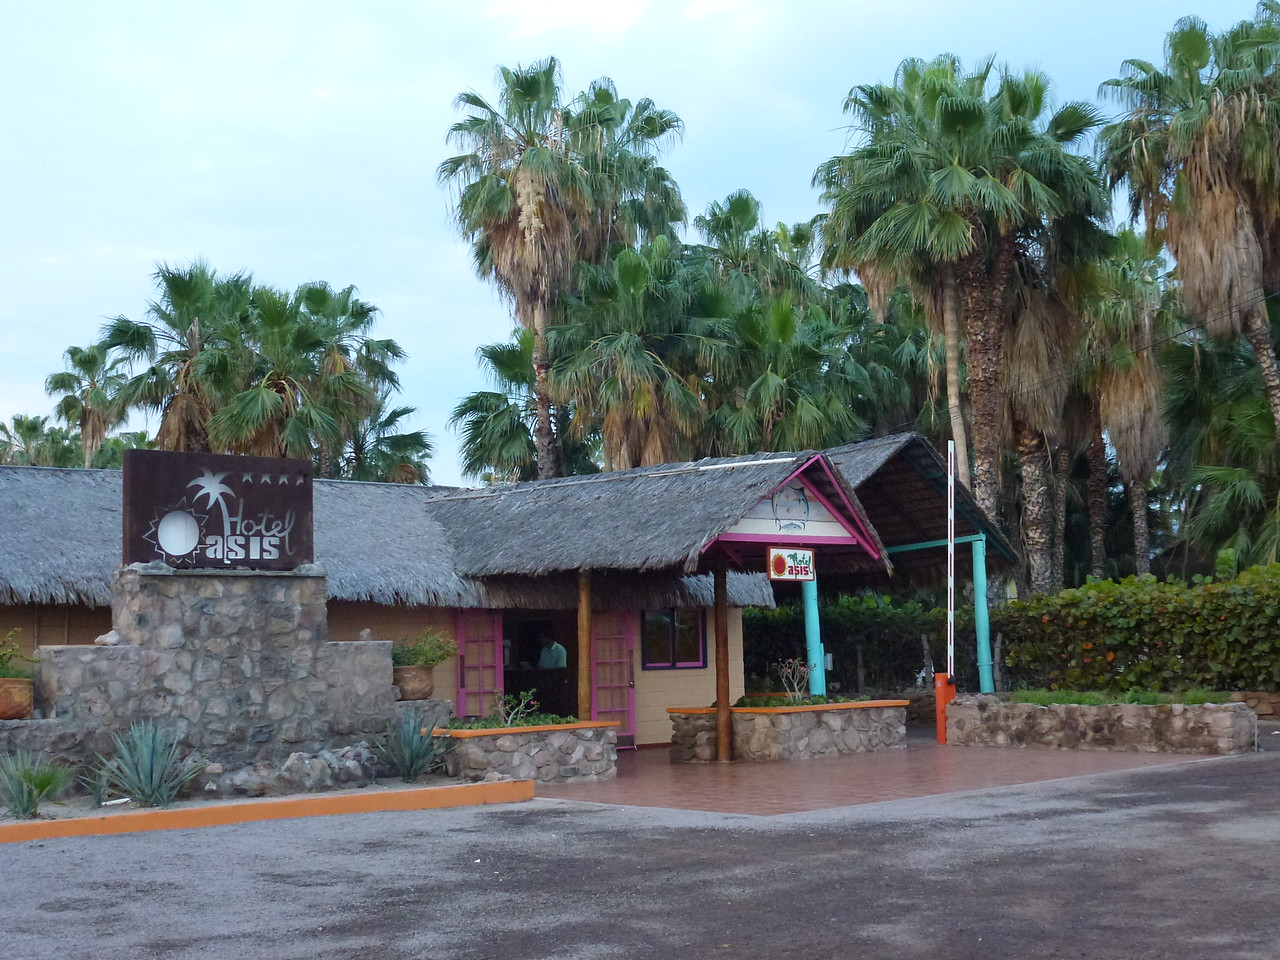 Later that day , I rolled into Loreto , BCS <br /> <br /> Loreto is home to the Oasis Hotel - my little honey hole <br /> <br /> Built in 1962 and just a super cool place to hang -which, is what I did for a week !